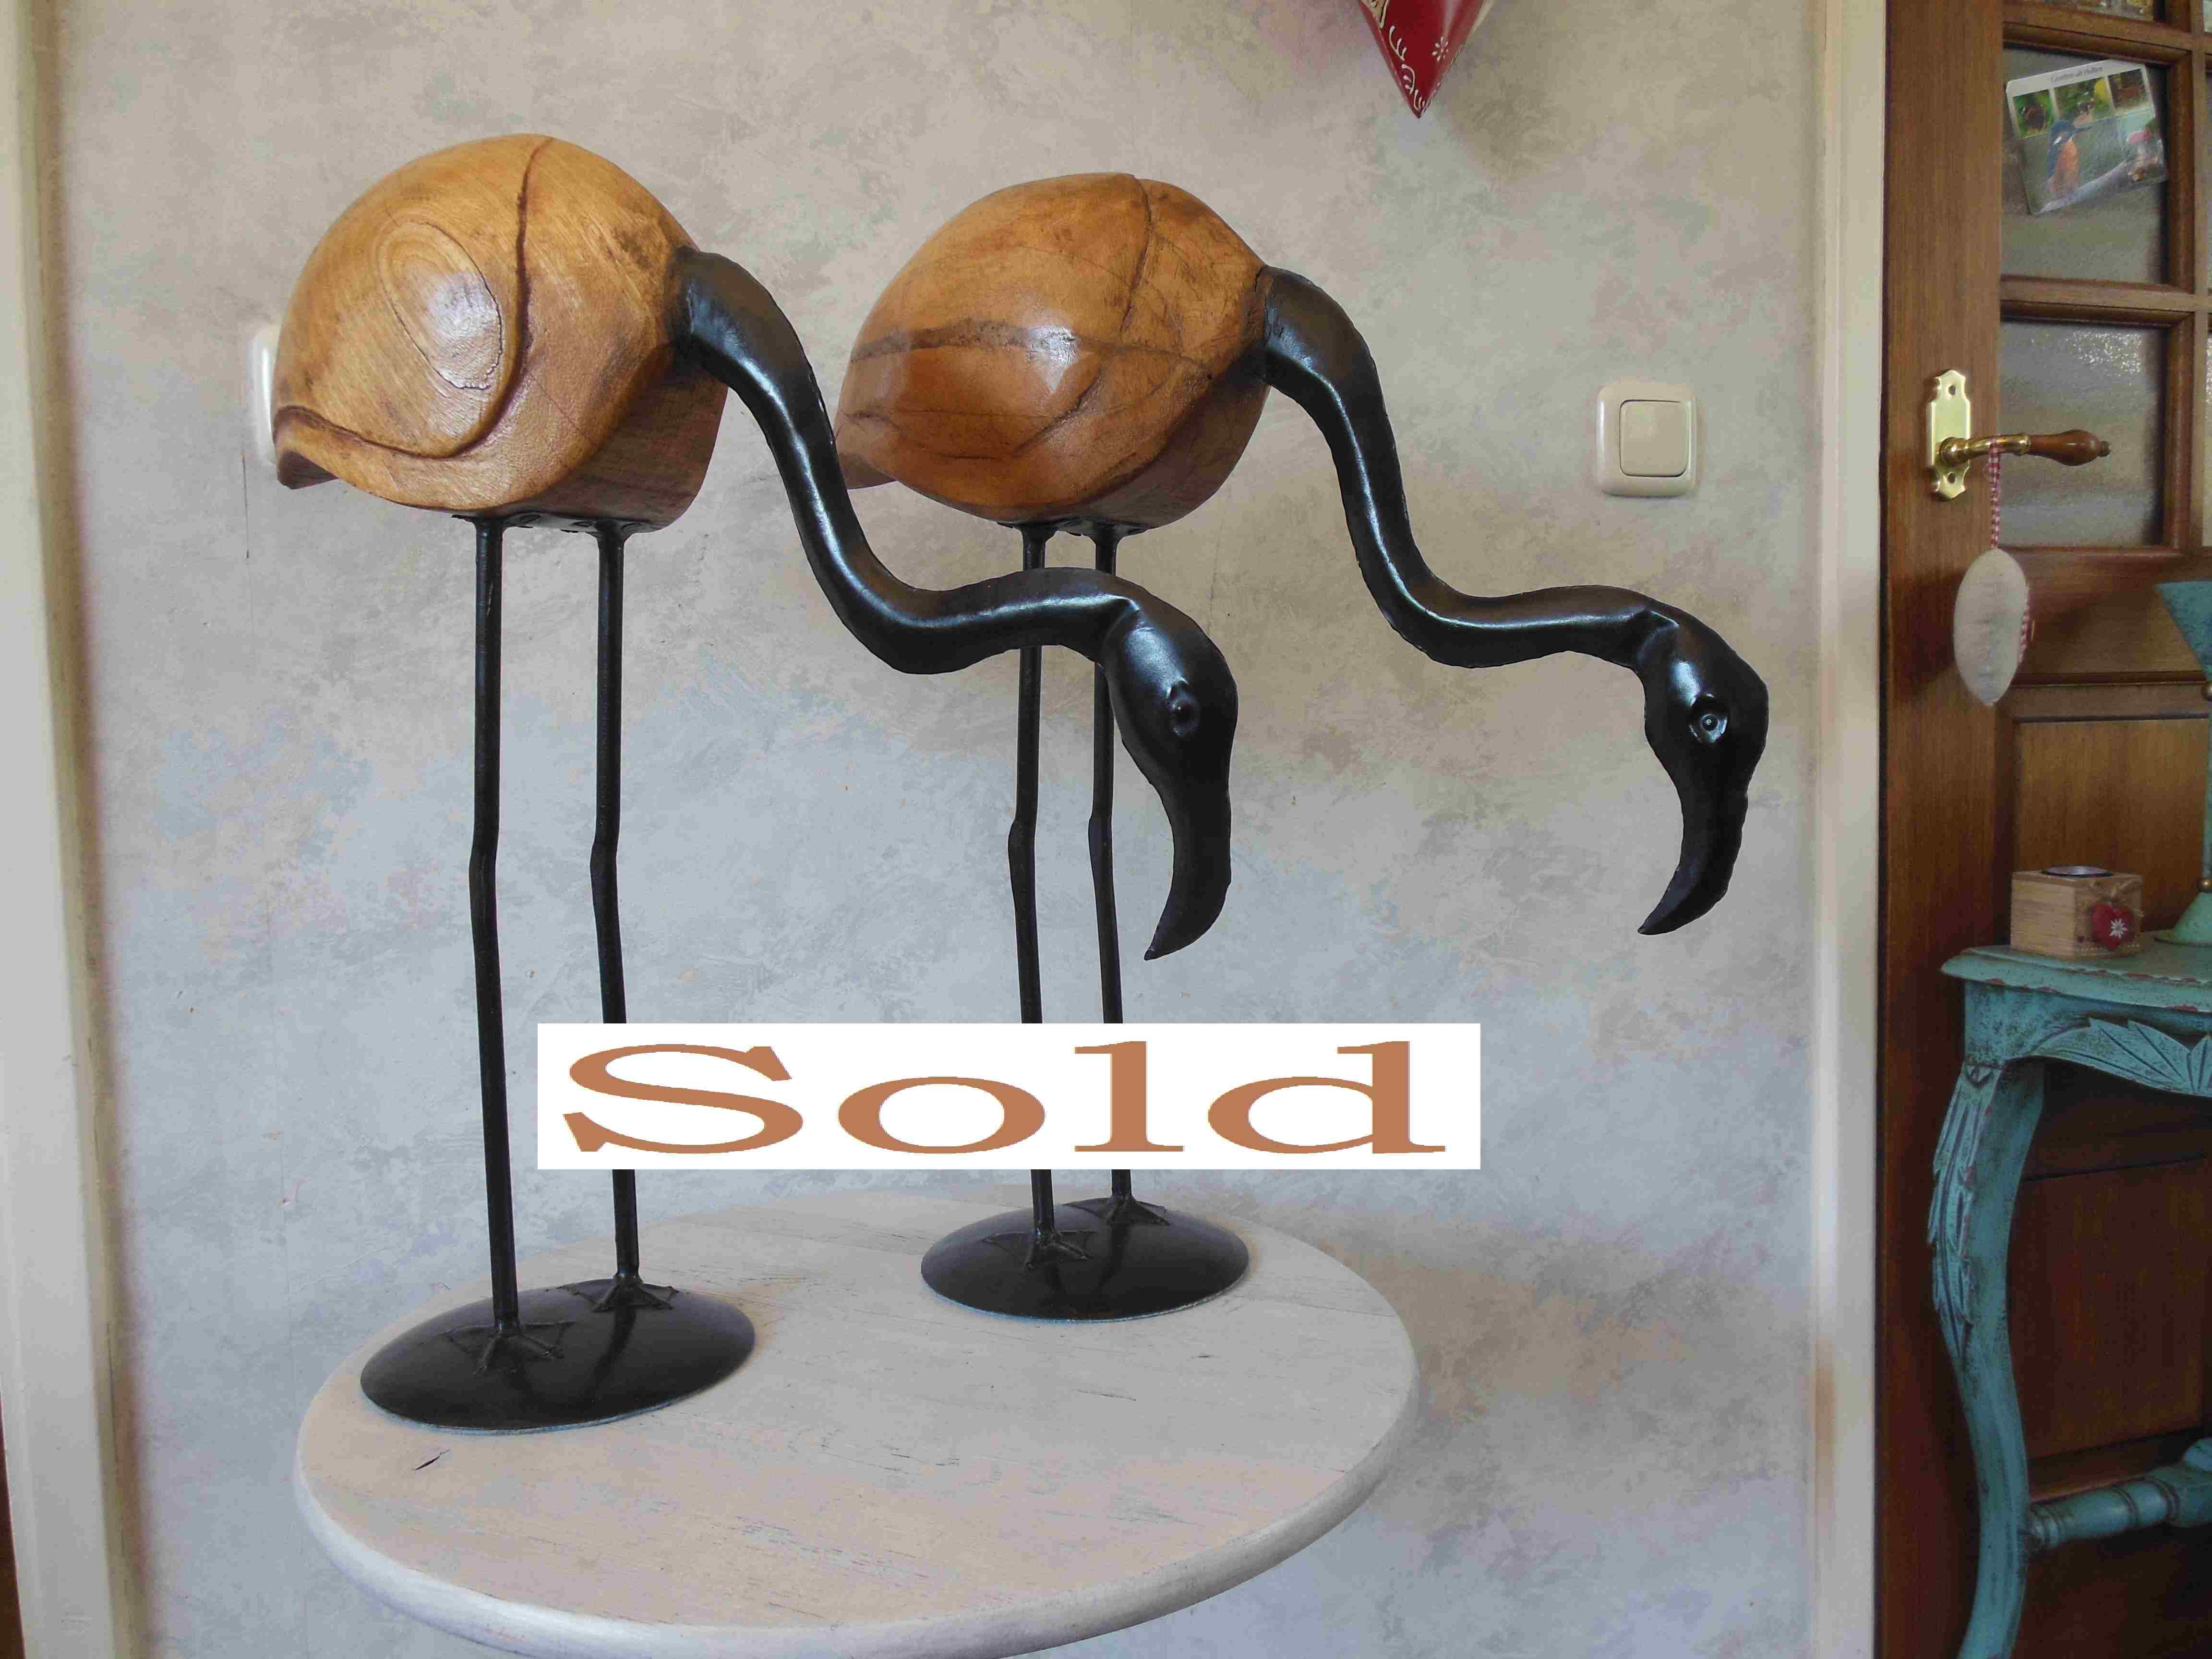 Two elegant flamingos made of wood and black metal with beautiful details.